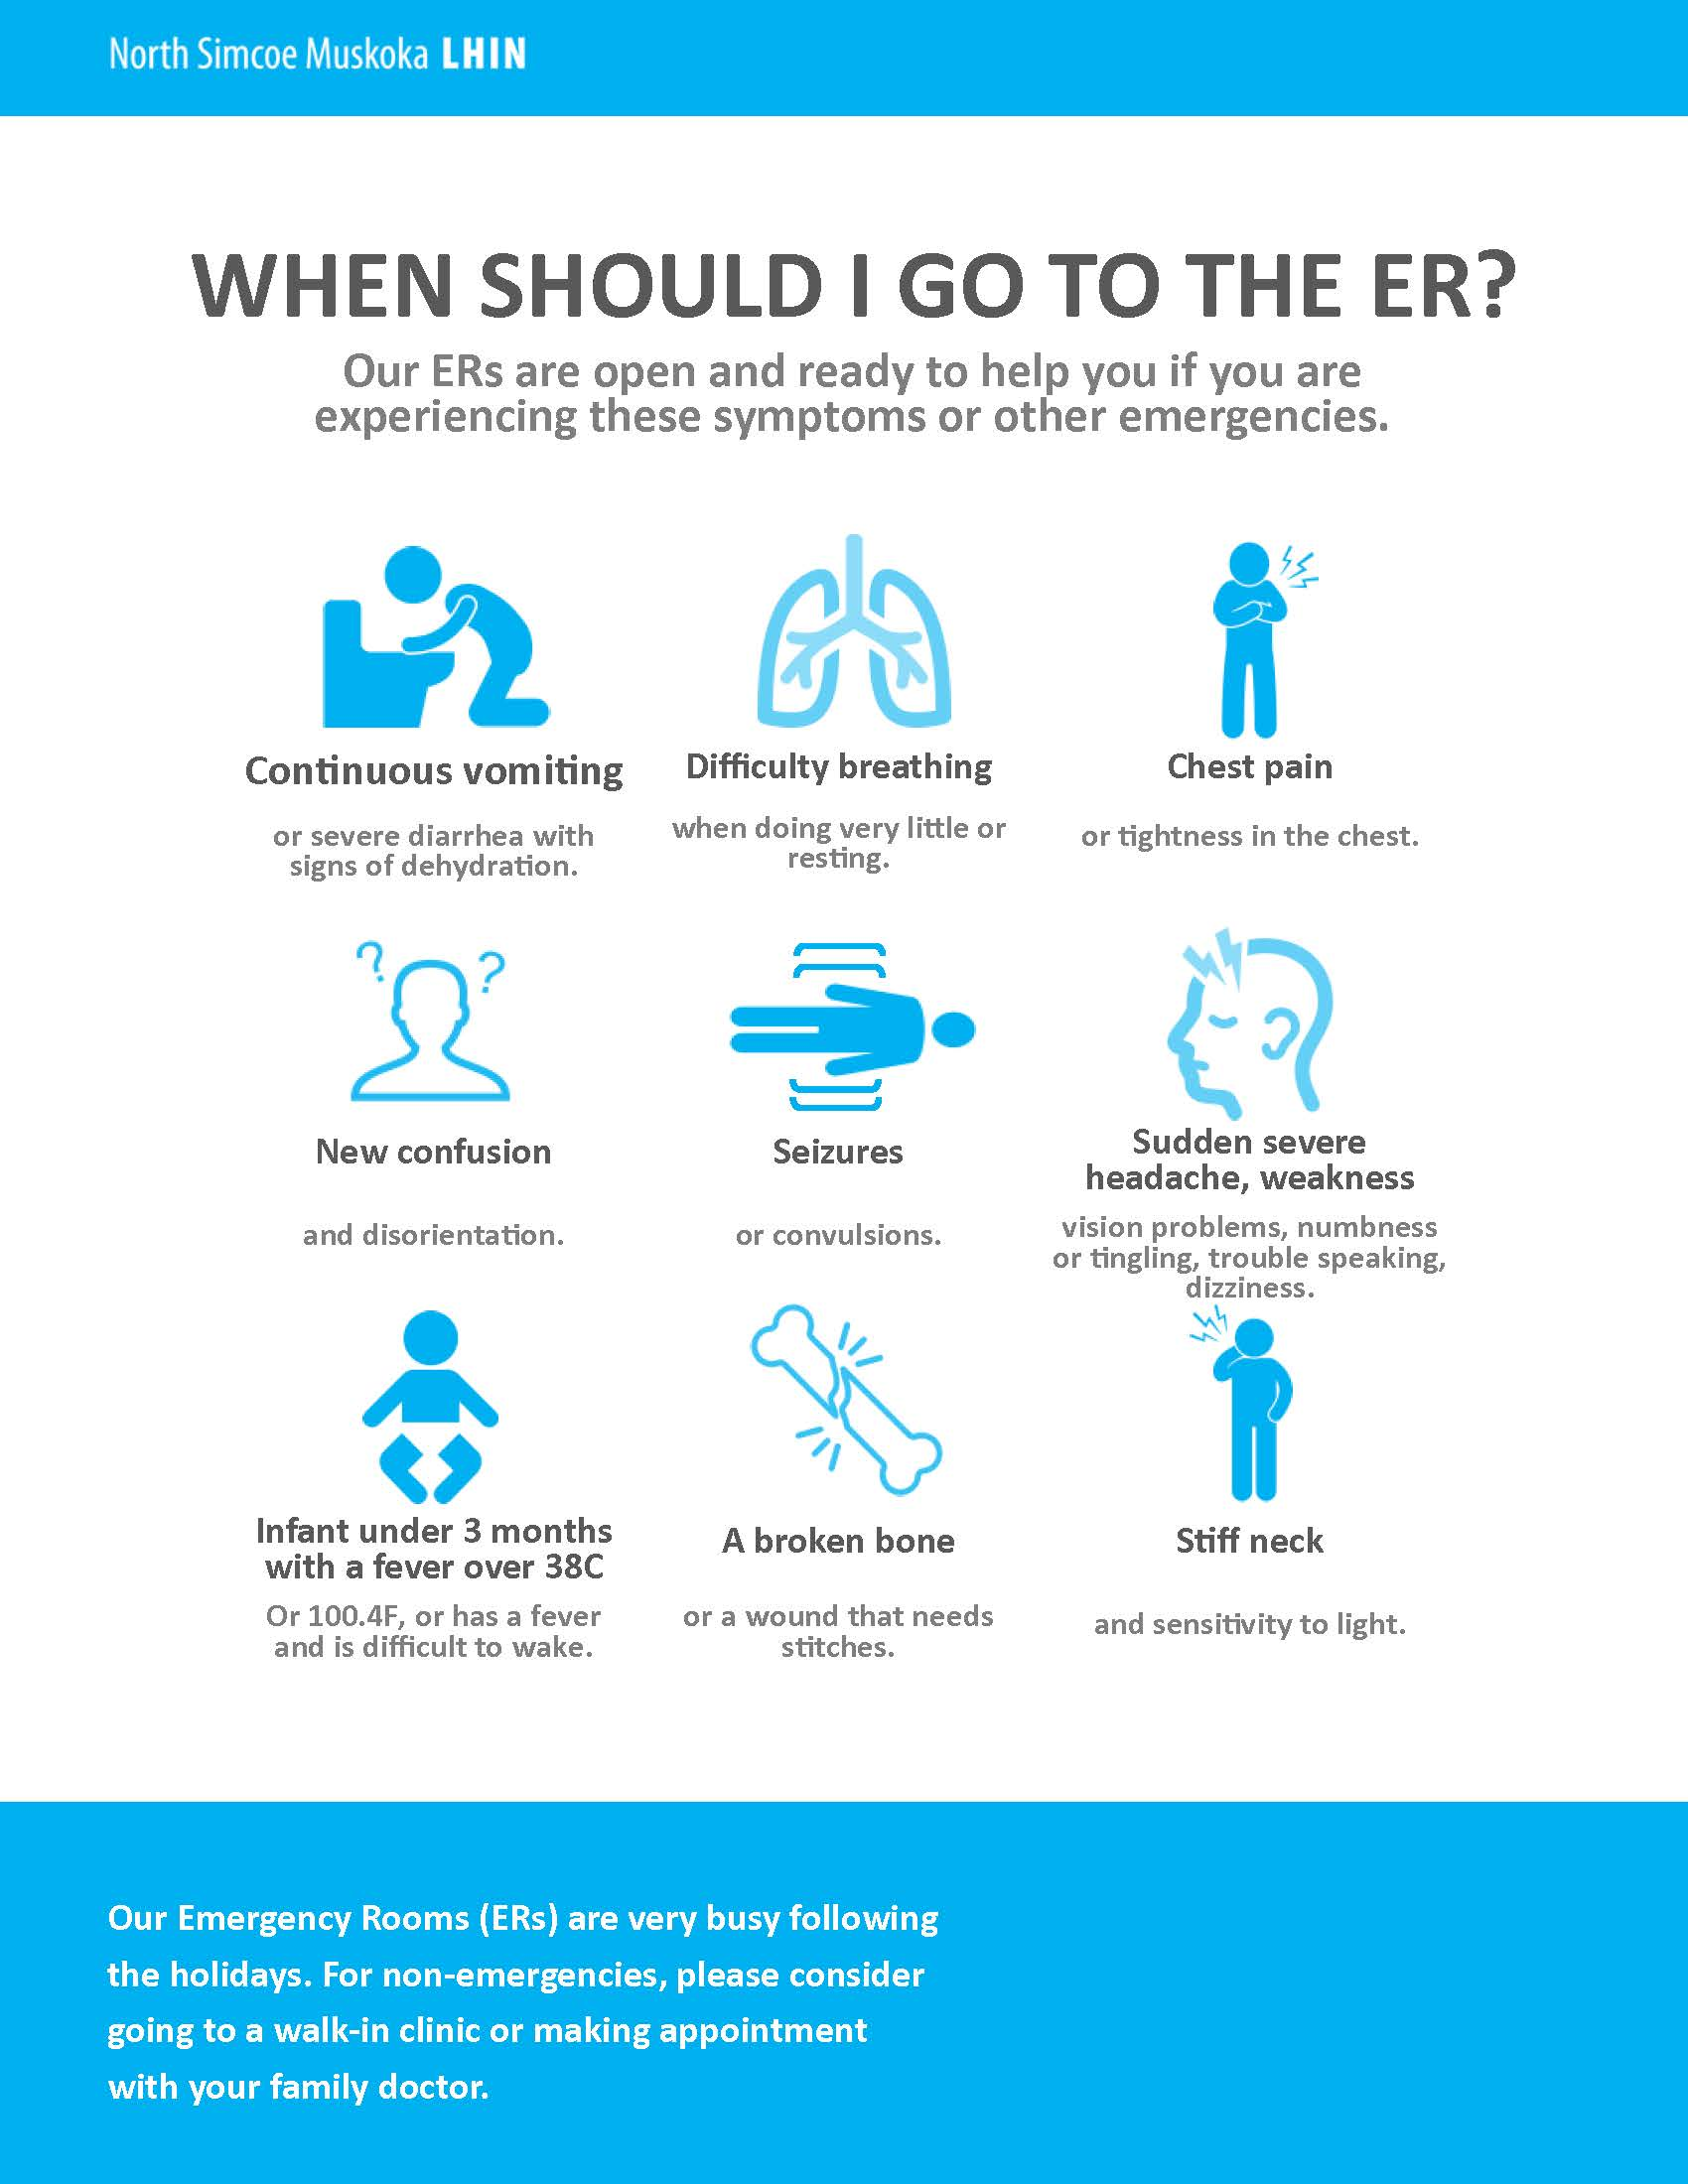 When to visit ER Infographic